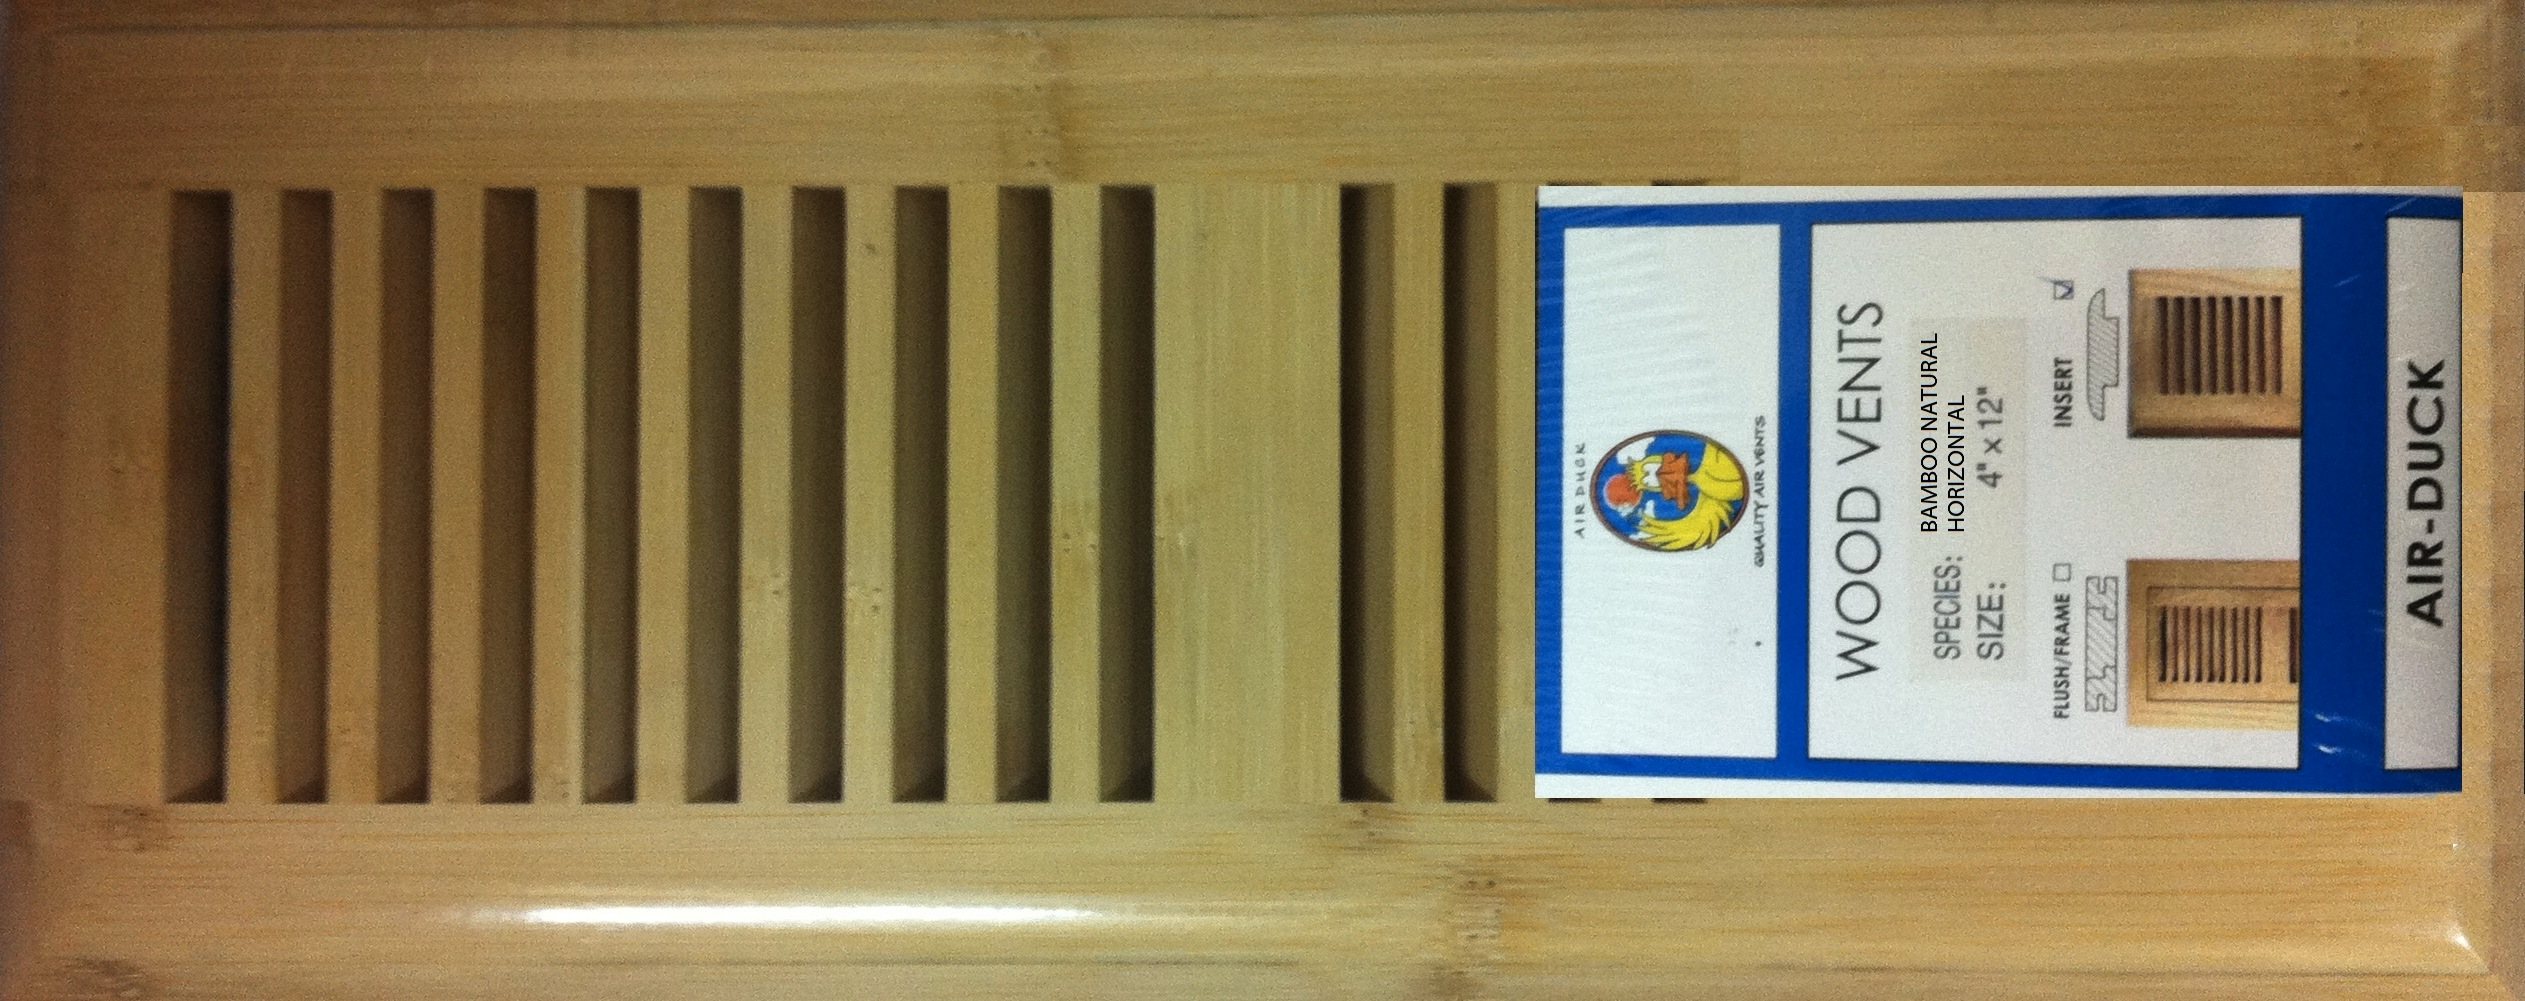 Wood Floor Vent Covers Floor Registers Floor Grills